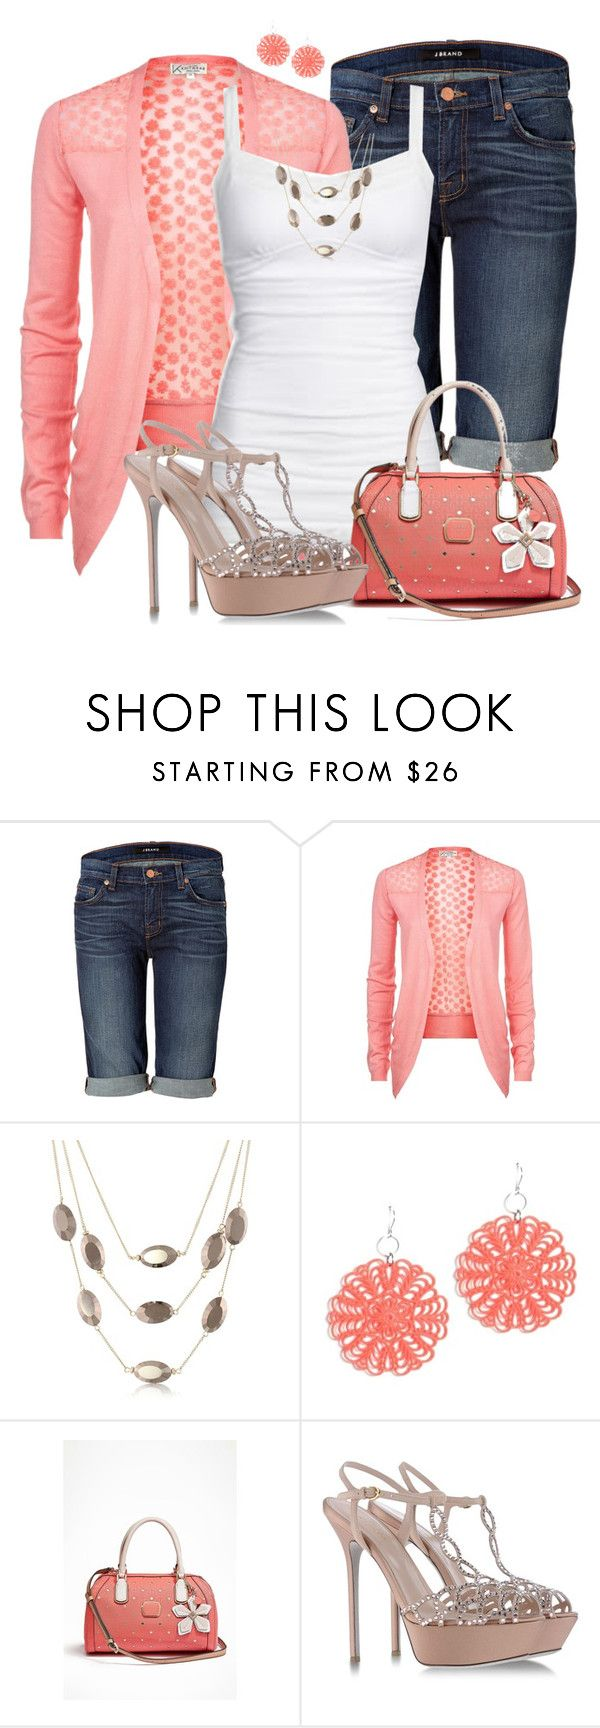 """""""Ready for Spring"""" by justbeccuz ❤ liked on Polyvore featuring J Brand, Kenneth Cole, Liz Law, GUESS and Sergio Rossi"""